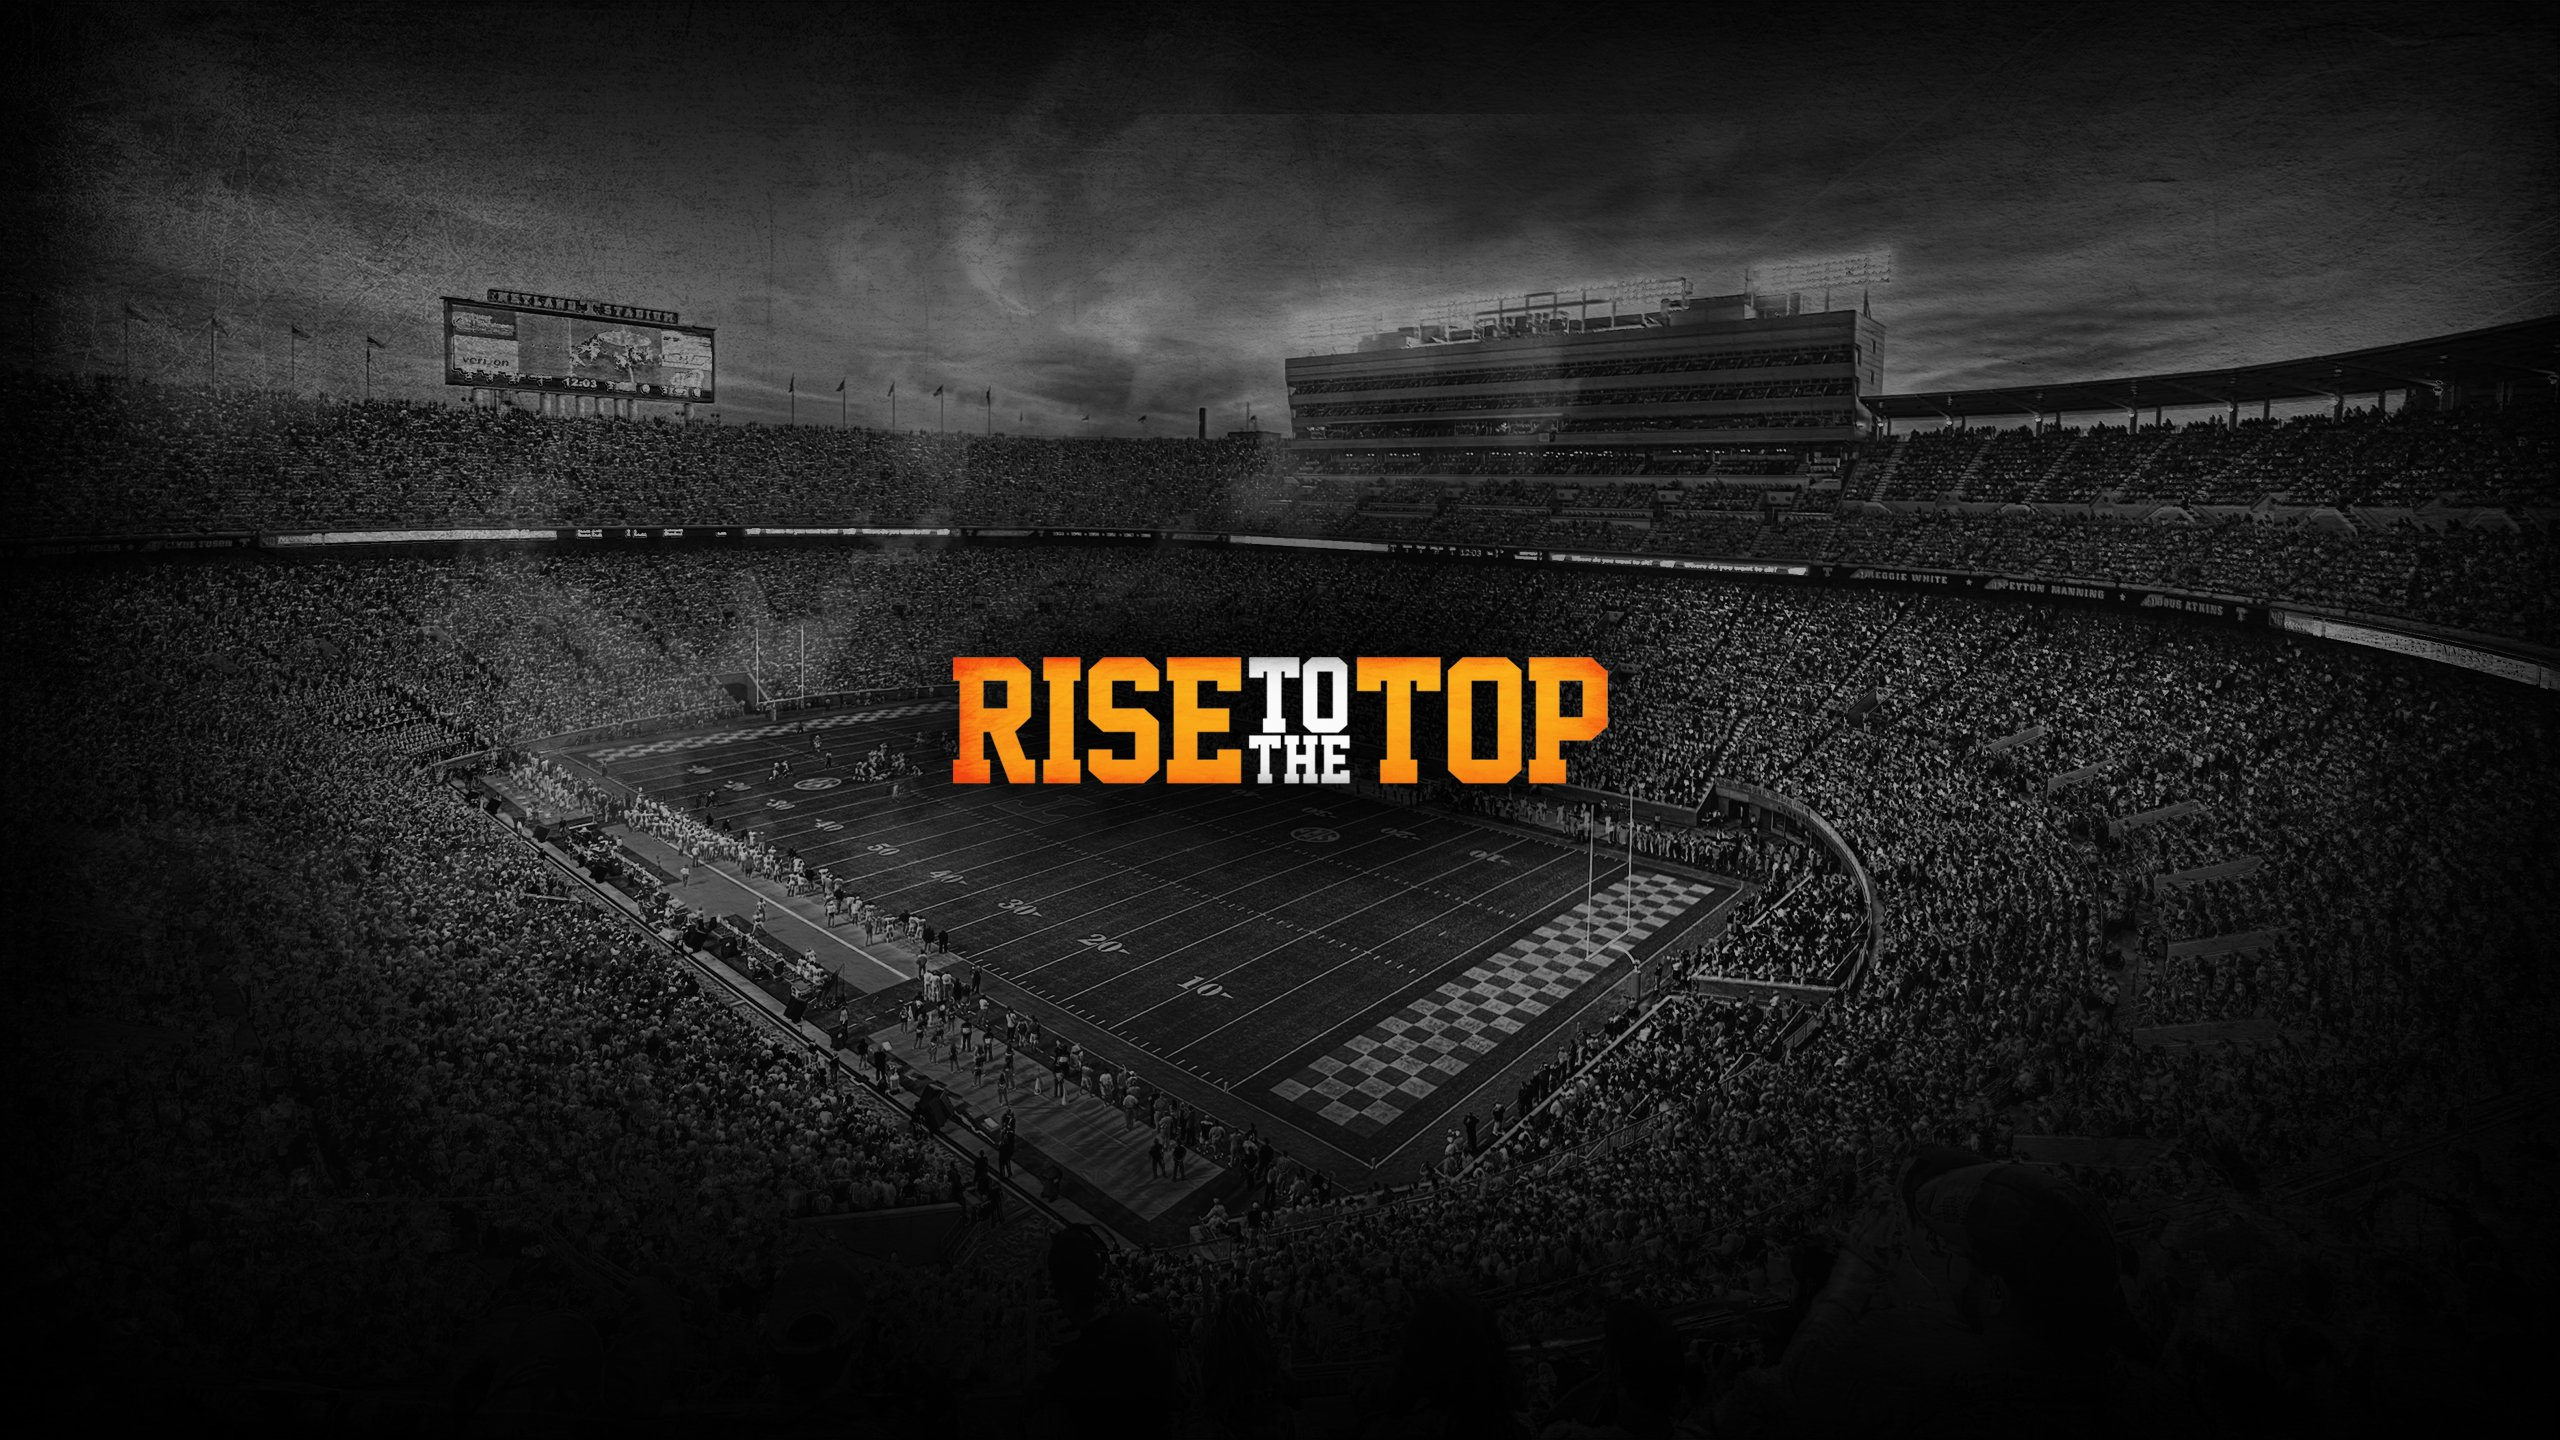 TENNESSEE VOLUNTEERS football college wallpaper 2560x1440 595844 2560x1440